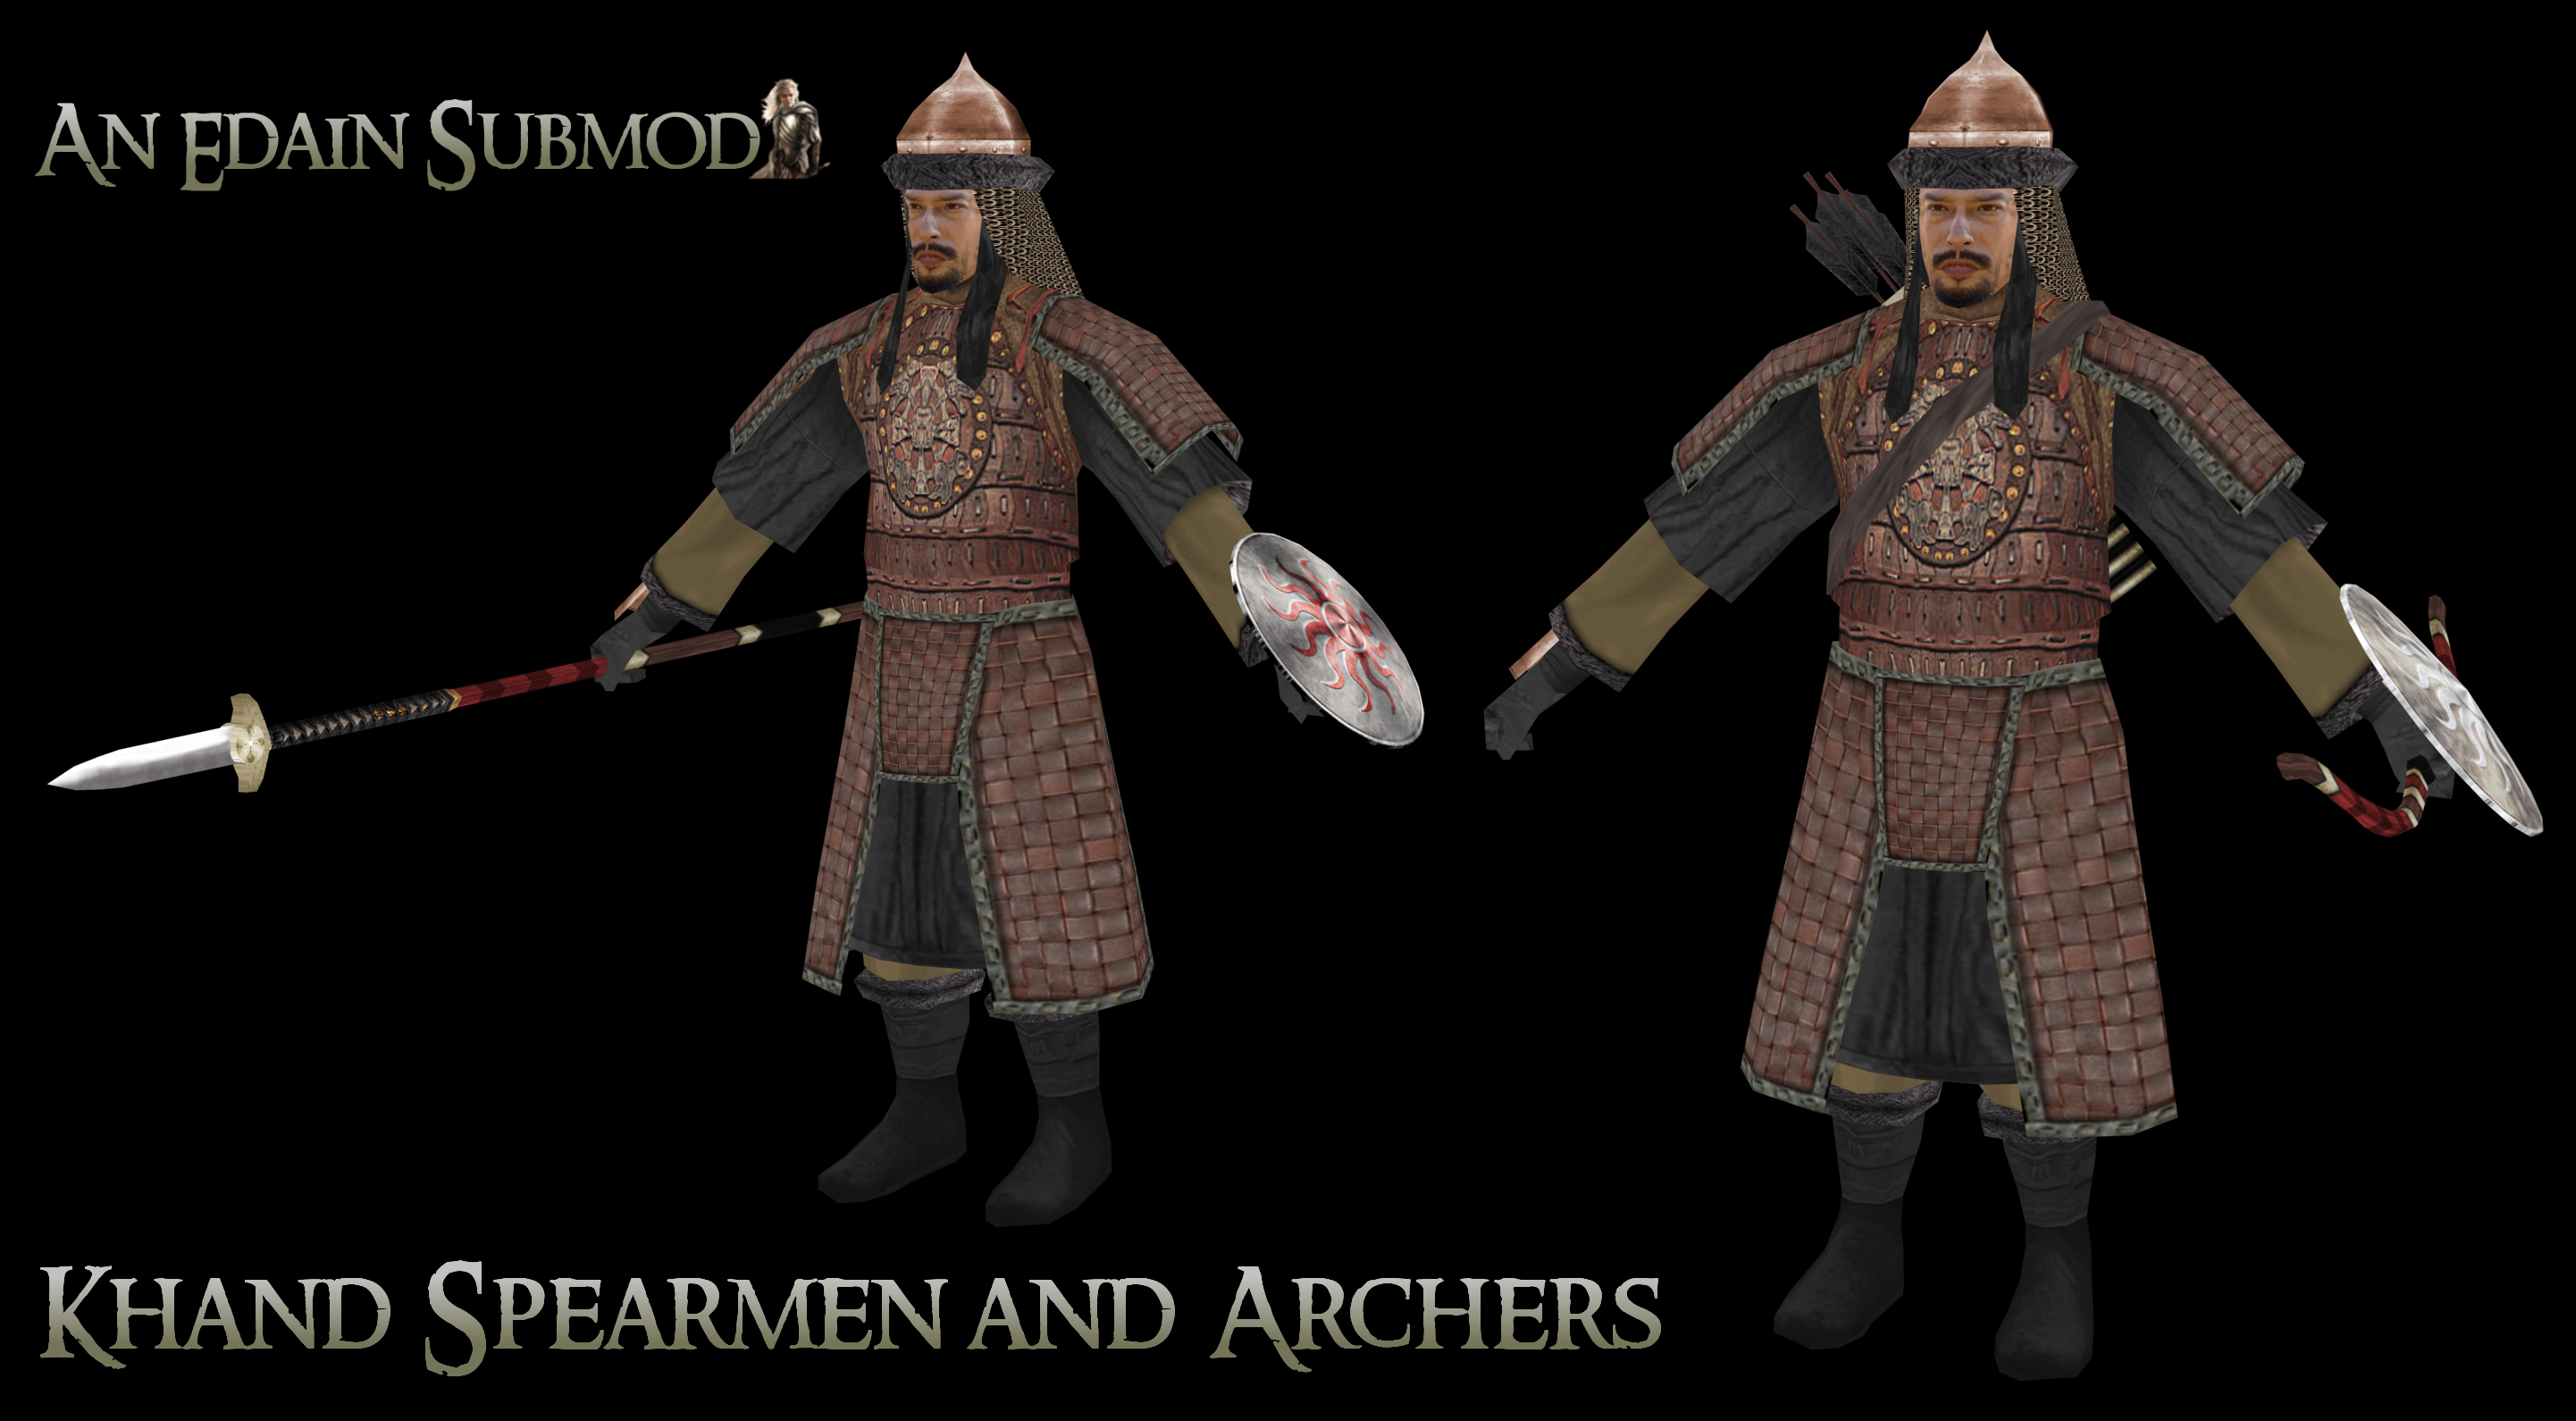 Khand Infantry, Spearmen and Archers